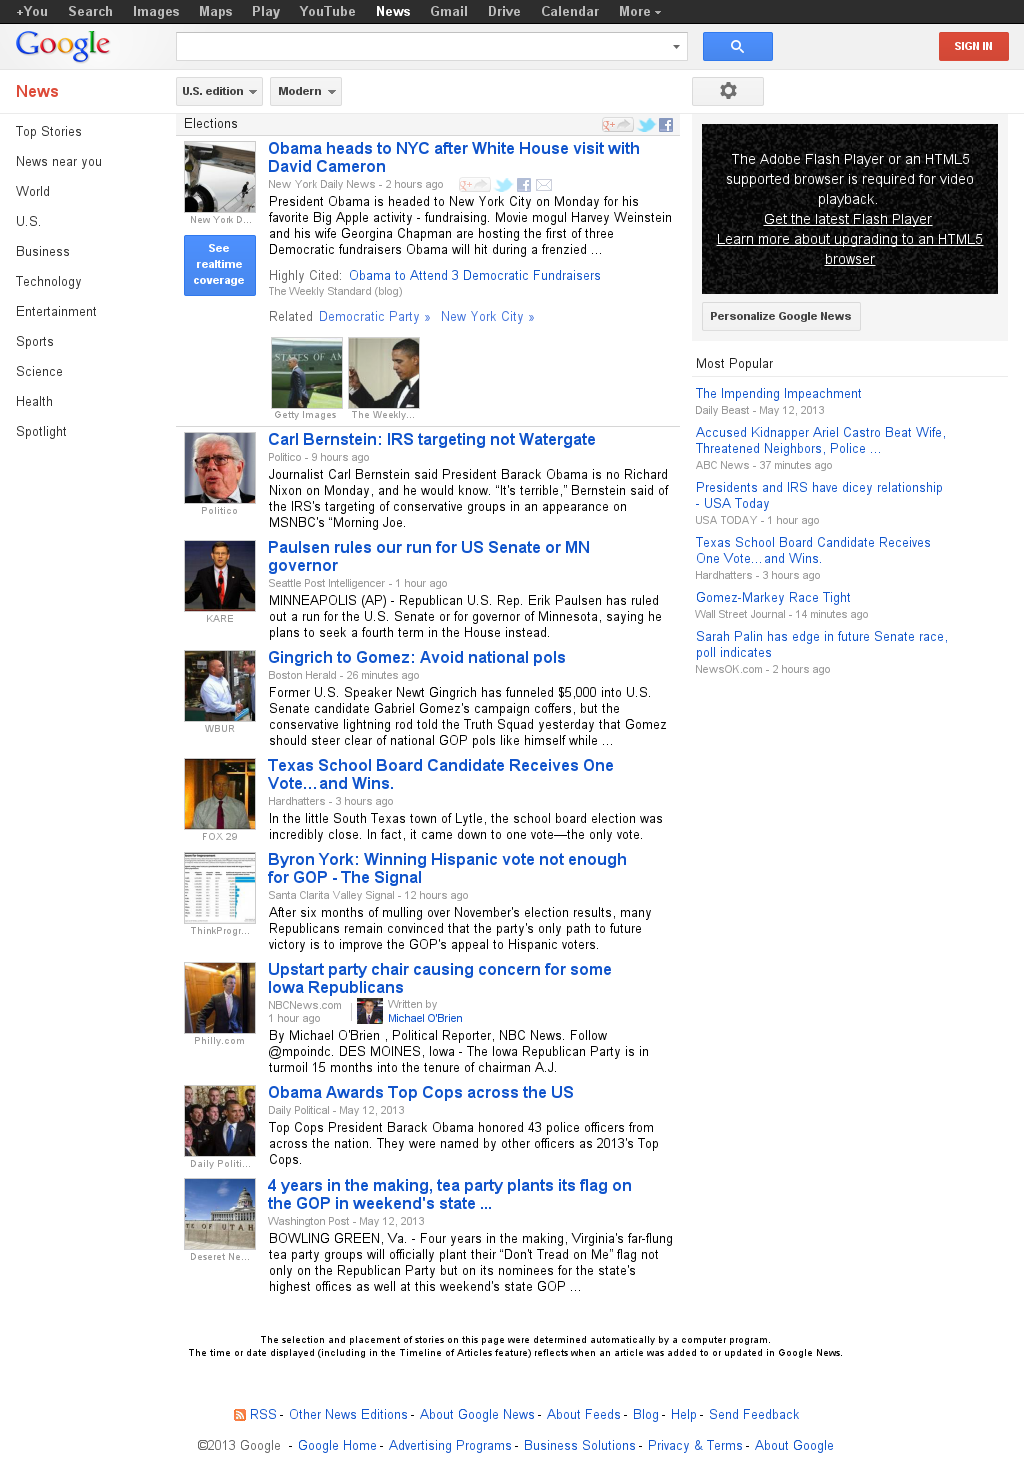 Google News: Elections at Monday May 13, 2013, 9:08 p.m. UTC